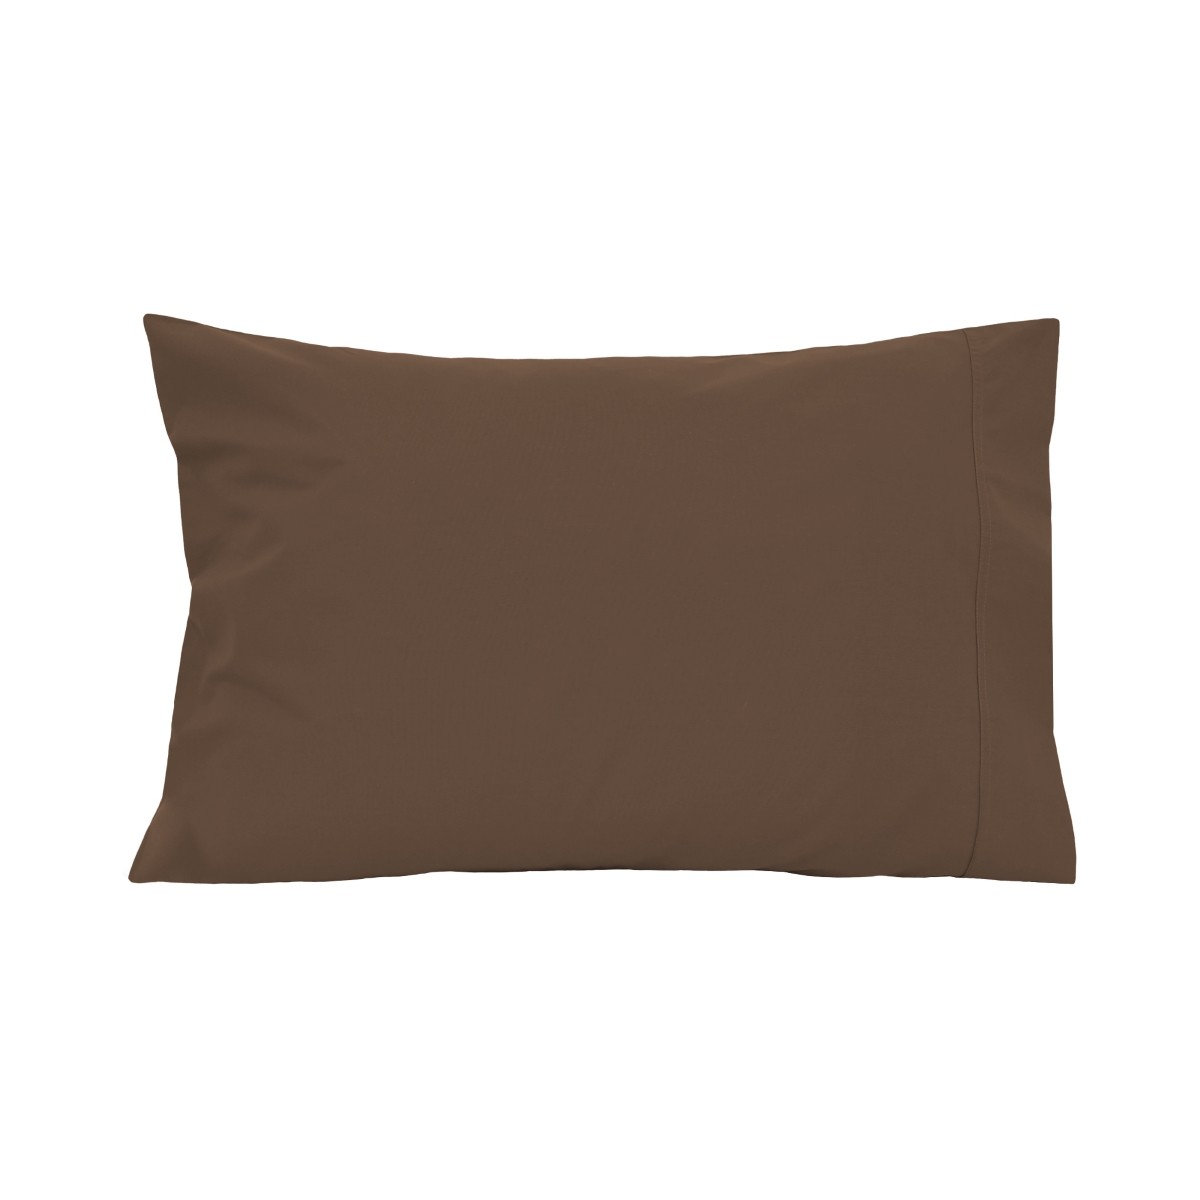 Pillowcase, Nude